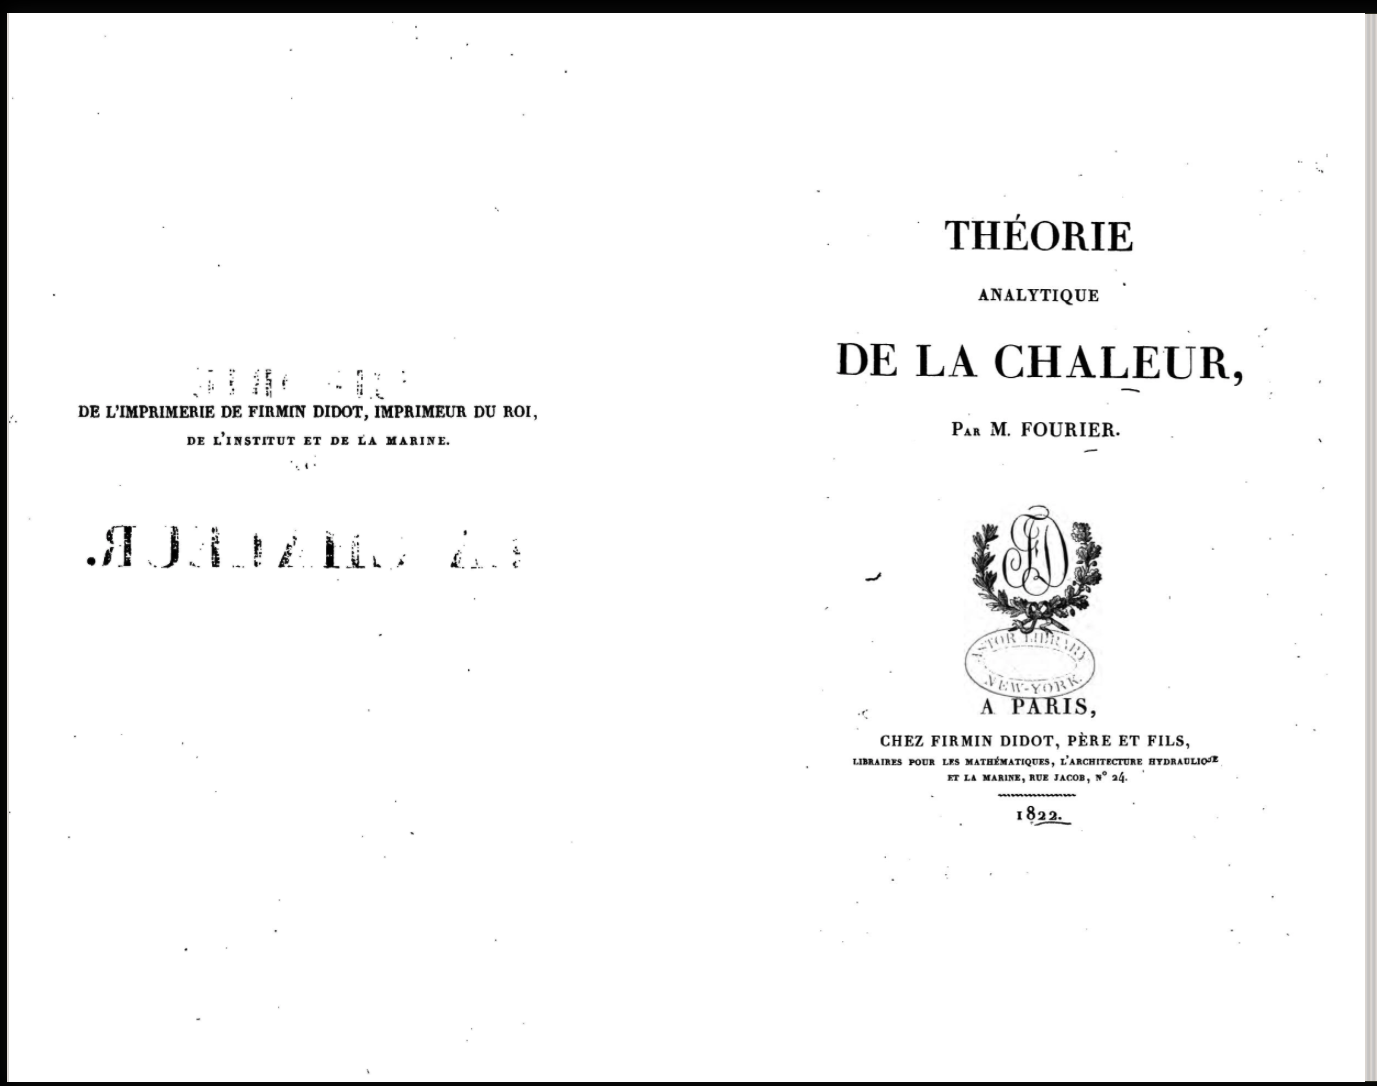 Page opening of Fourier's book showing its title page and the printer's identification on the page facing title page. The way the book was scanned did not show the gutter between the two page